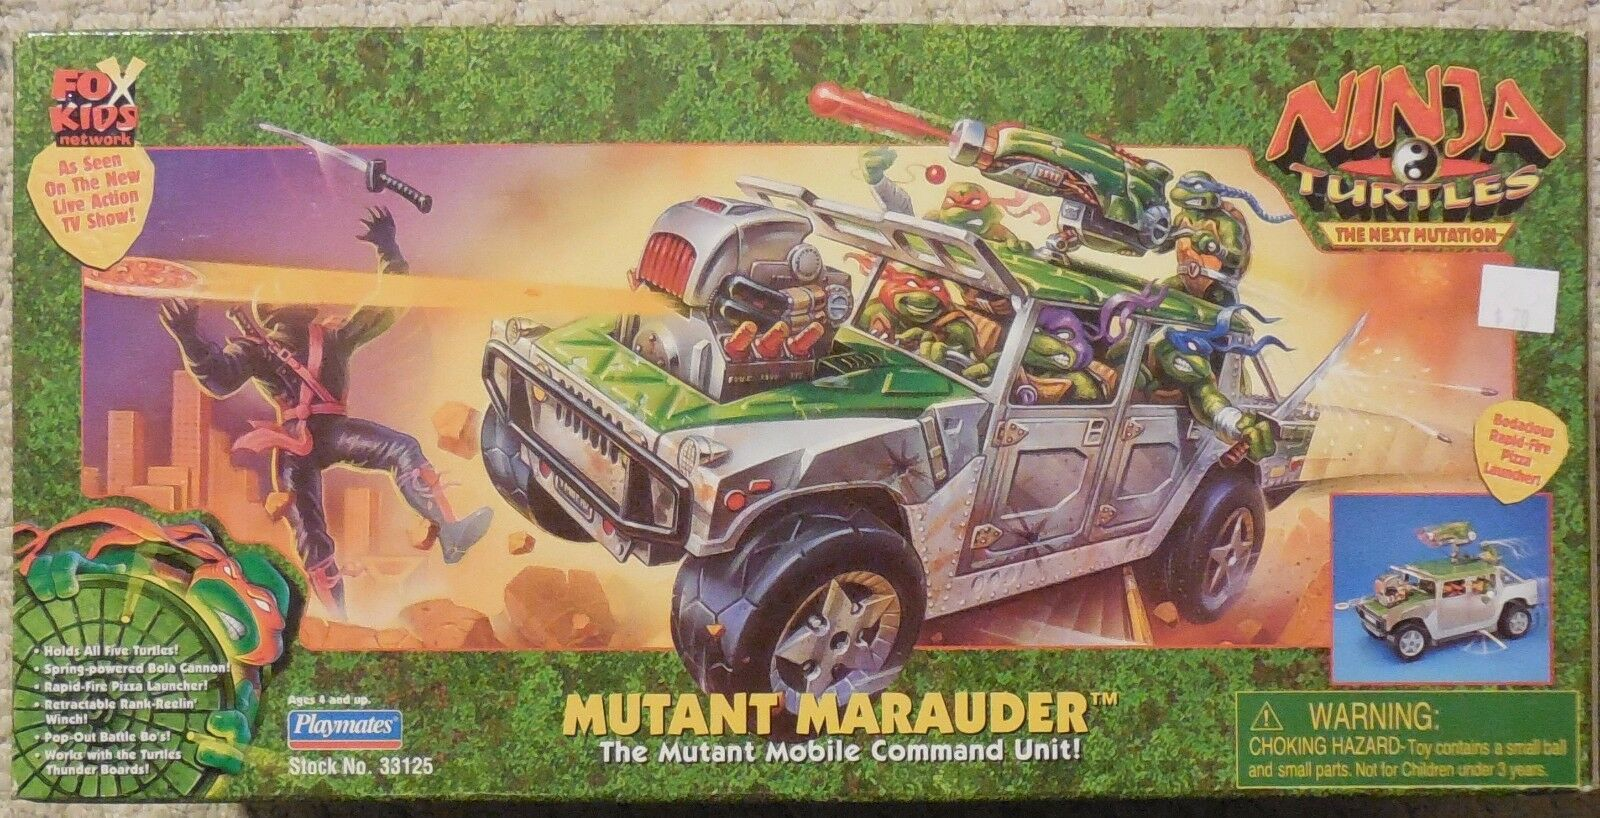 Tmnt Playmates Mutant Marauder Misb Neu Humvee Mutant Mobile Command Unit